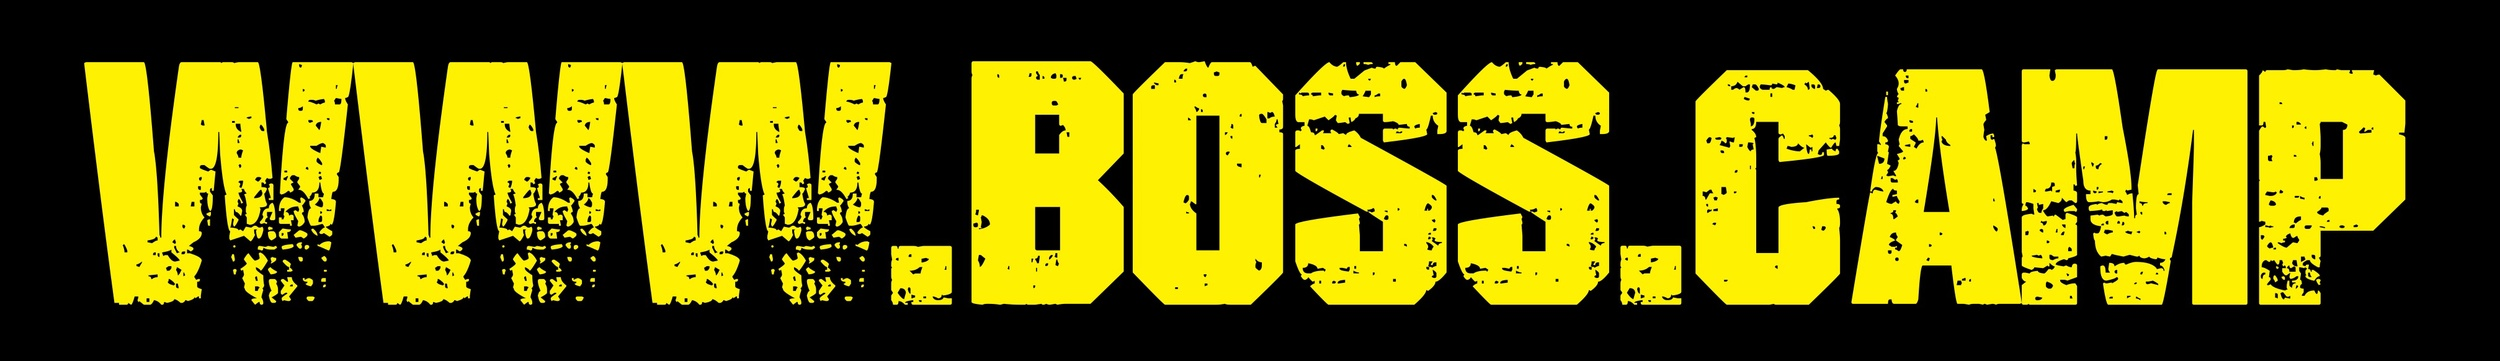 Improve your job satisfaction and make work work with www.boss.camp Jpeg